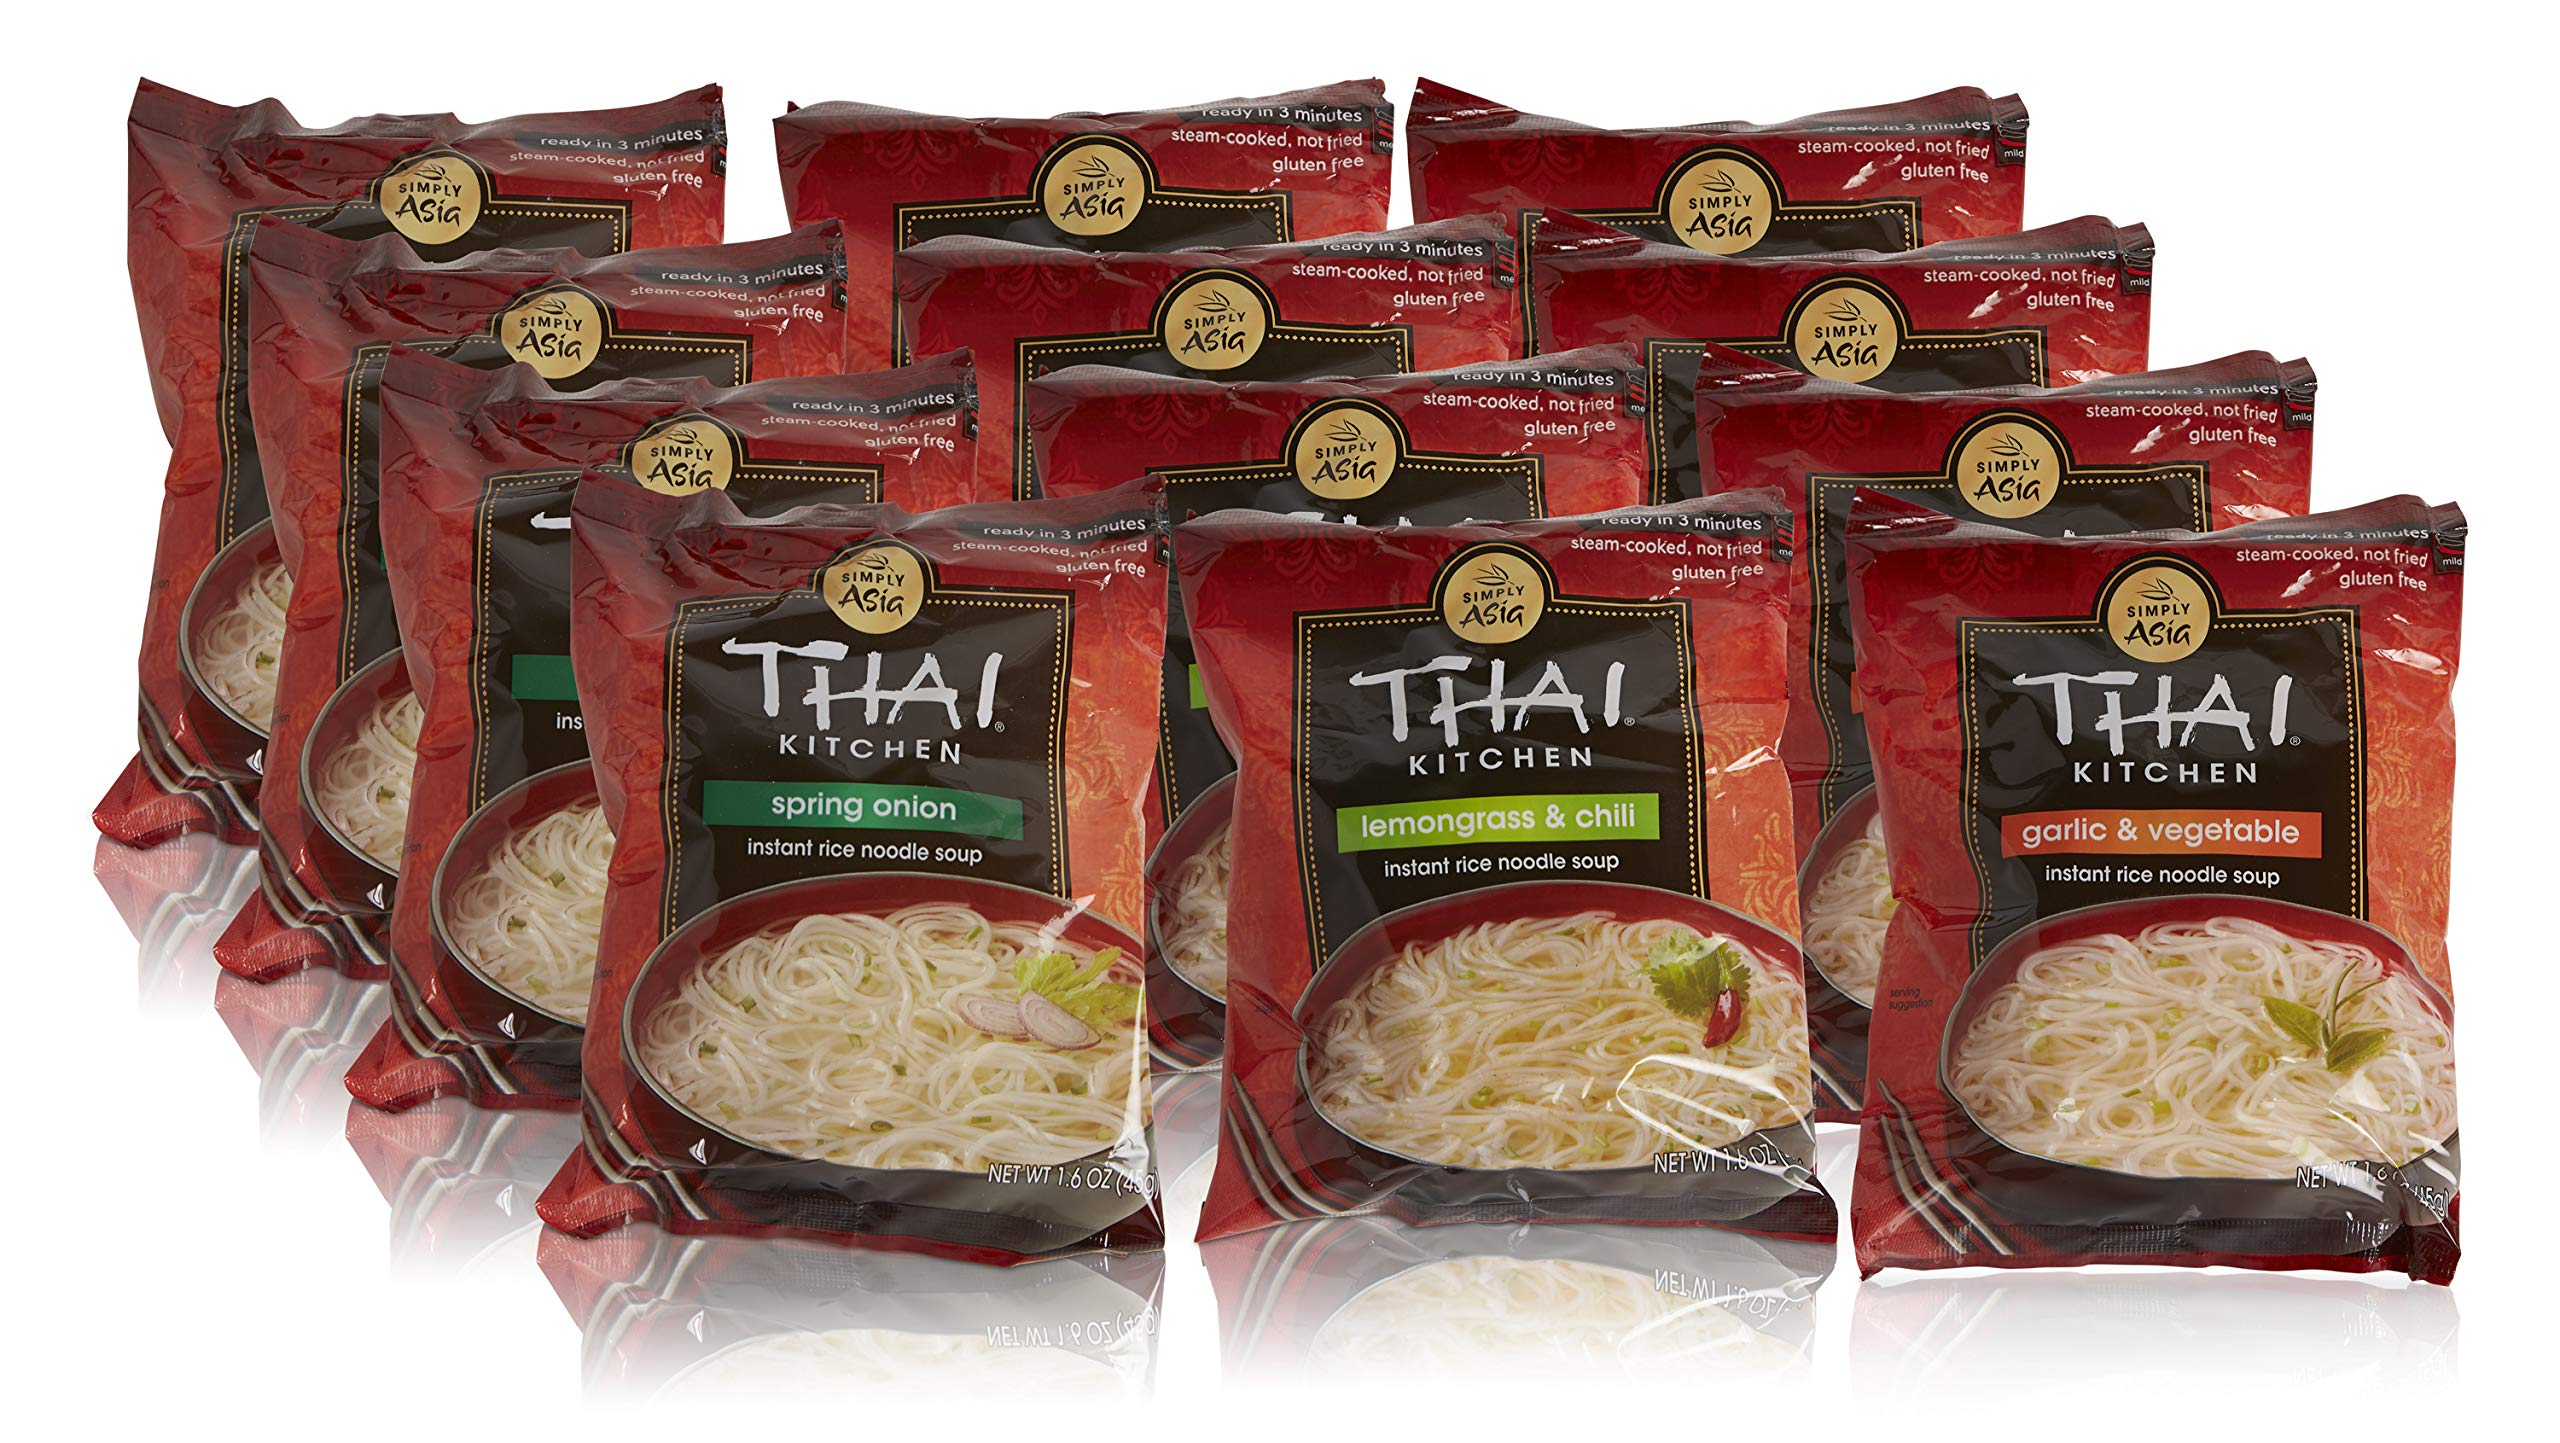 Thai Kitchen Instant Rice Noodle Soup Variety Pack, Gluten Free Ramen, Ready in 3 Minutes, 1.6oz (Pack of 12) by Thai Kitchen